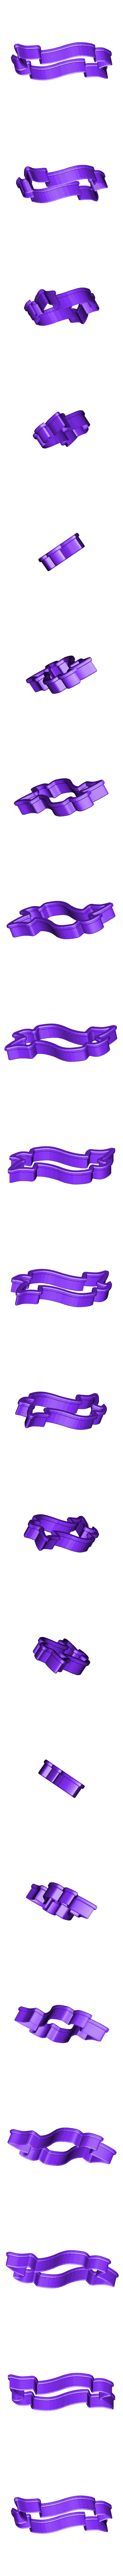 Banner 1 Cookie Cutter.stl Download free STL file Banner 1 Cookie Cutter • 3D printer object, 3DBuilder